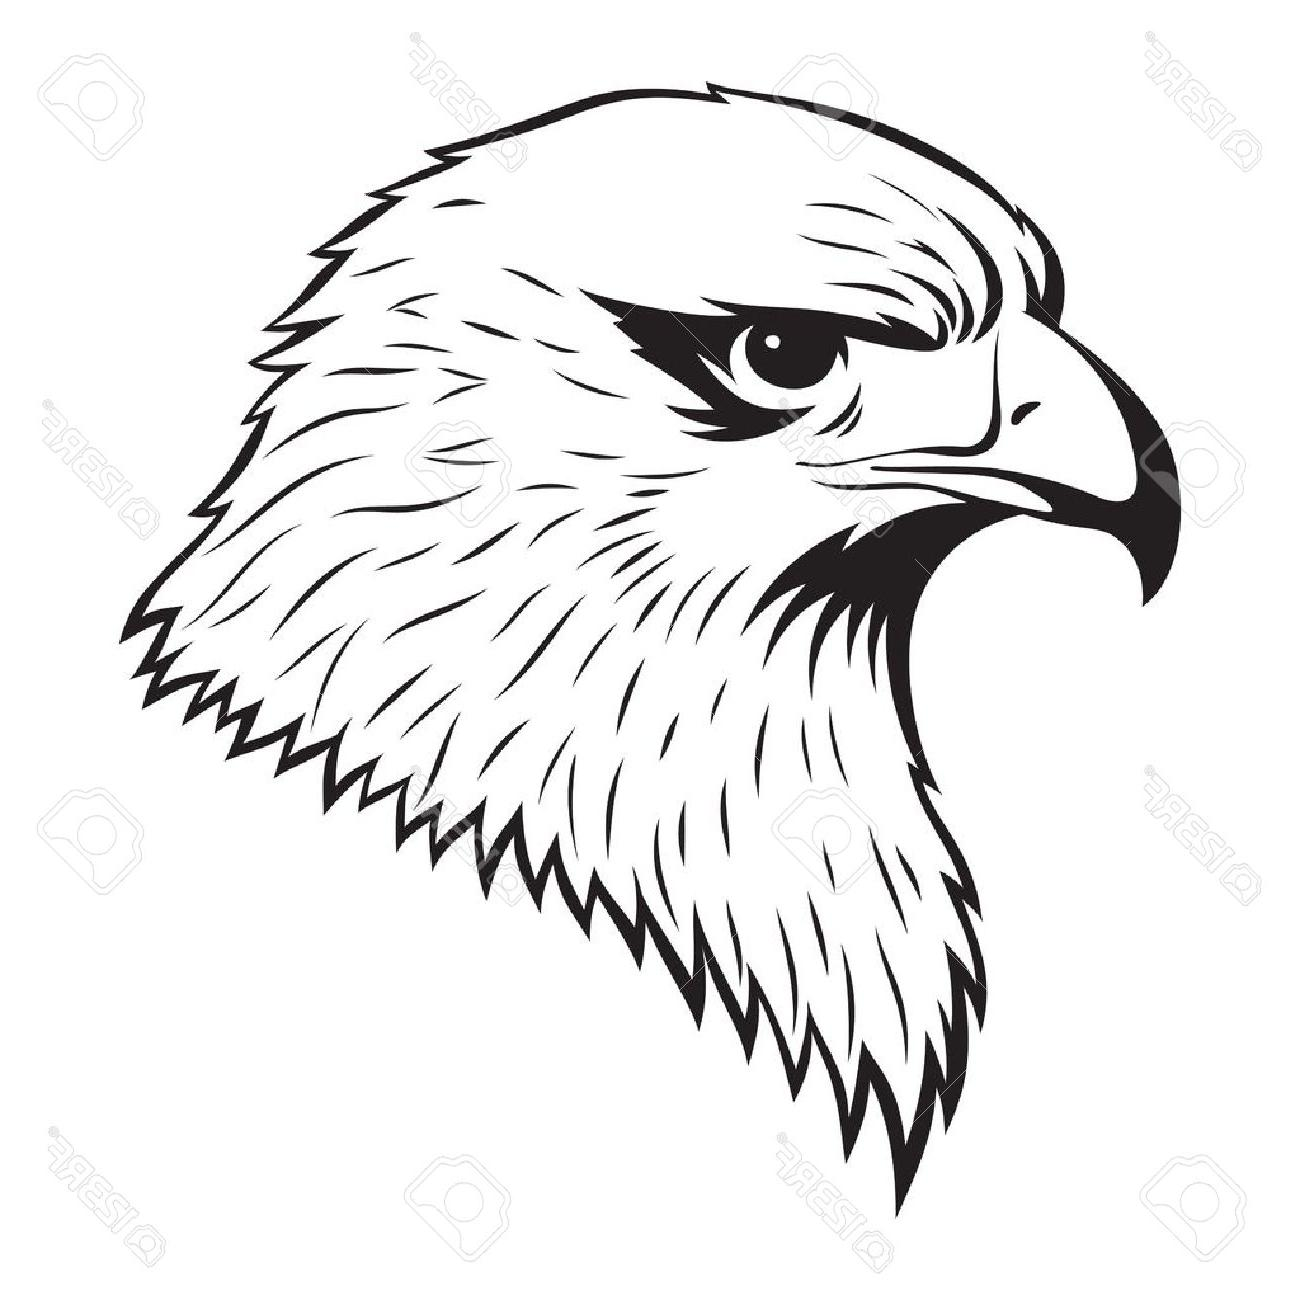 1300x1300 Simple Eagle Standing Coloring Page. Hand Drawn Pencil Graphics